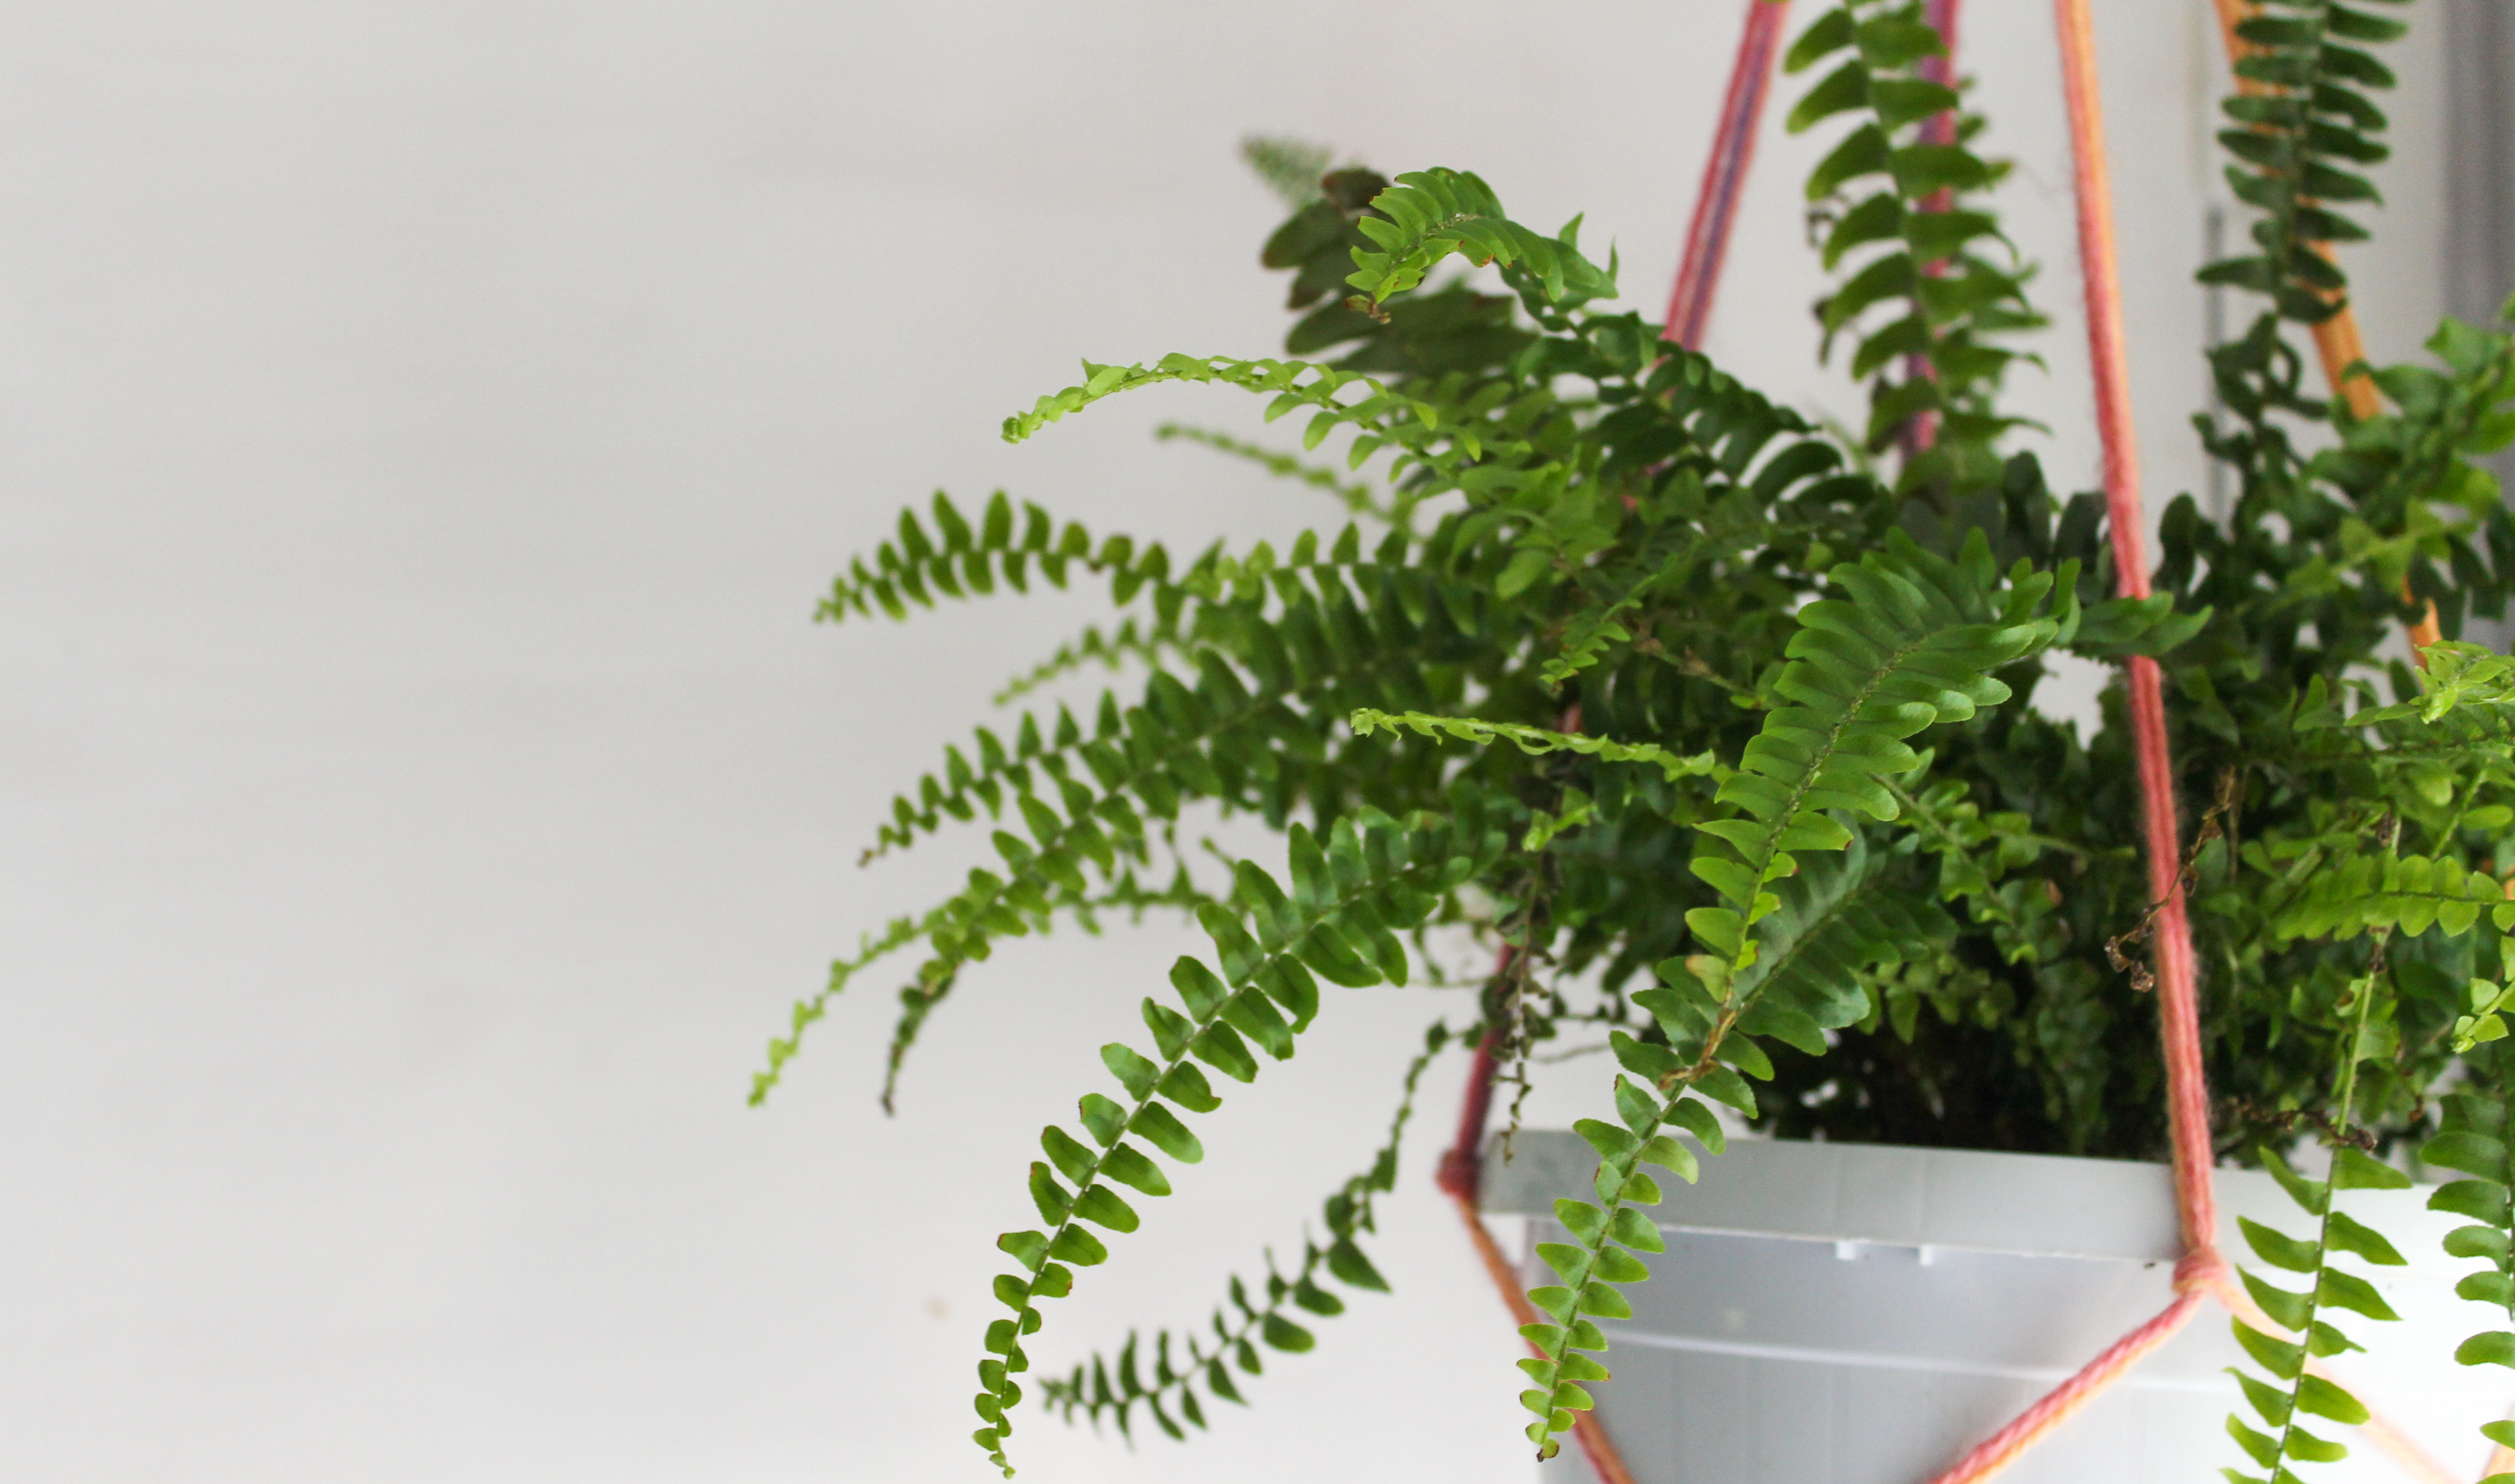 A green Bosten Fern plant, hanging in a pink macrame hanger. The pot is white, as is the wall behind it.